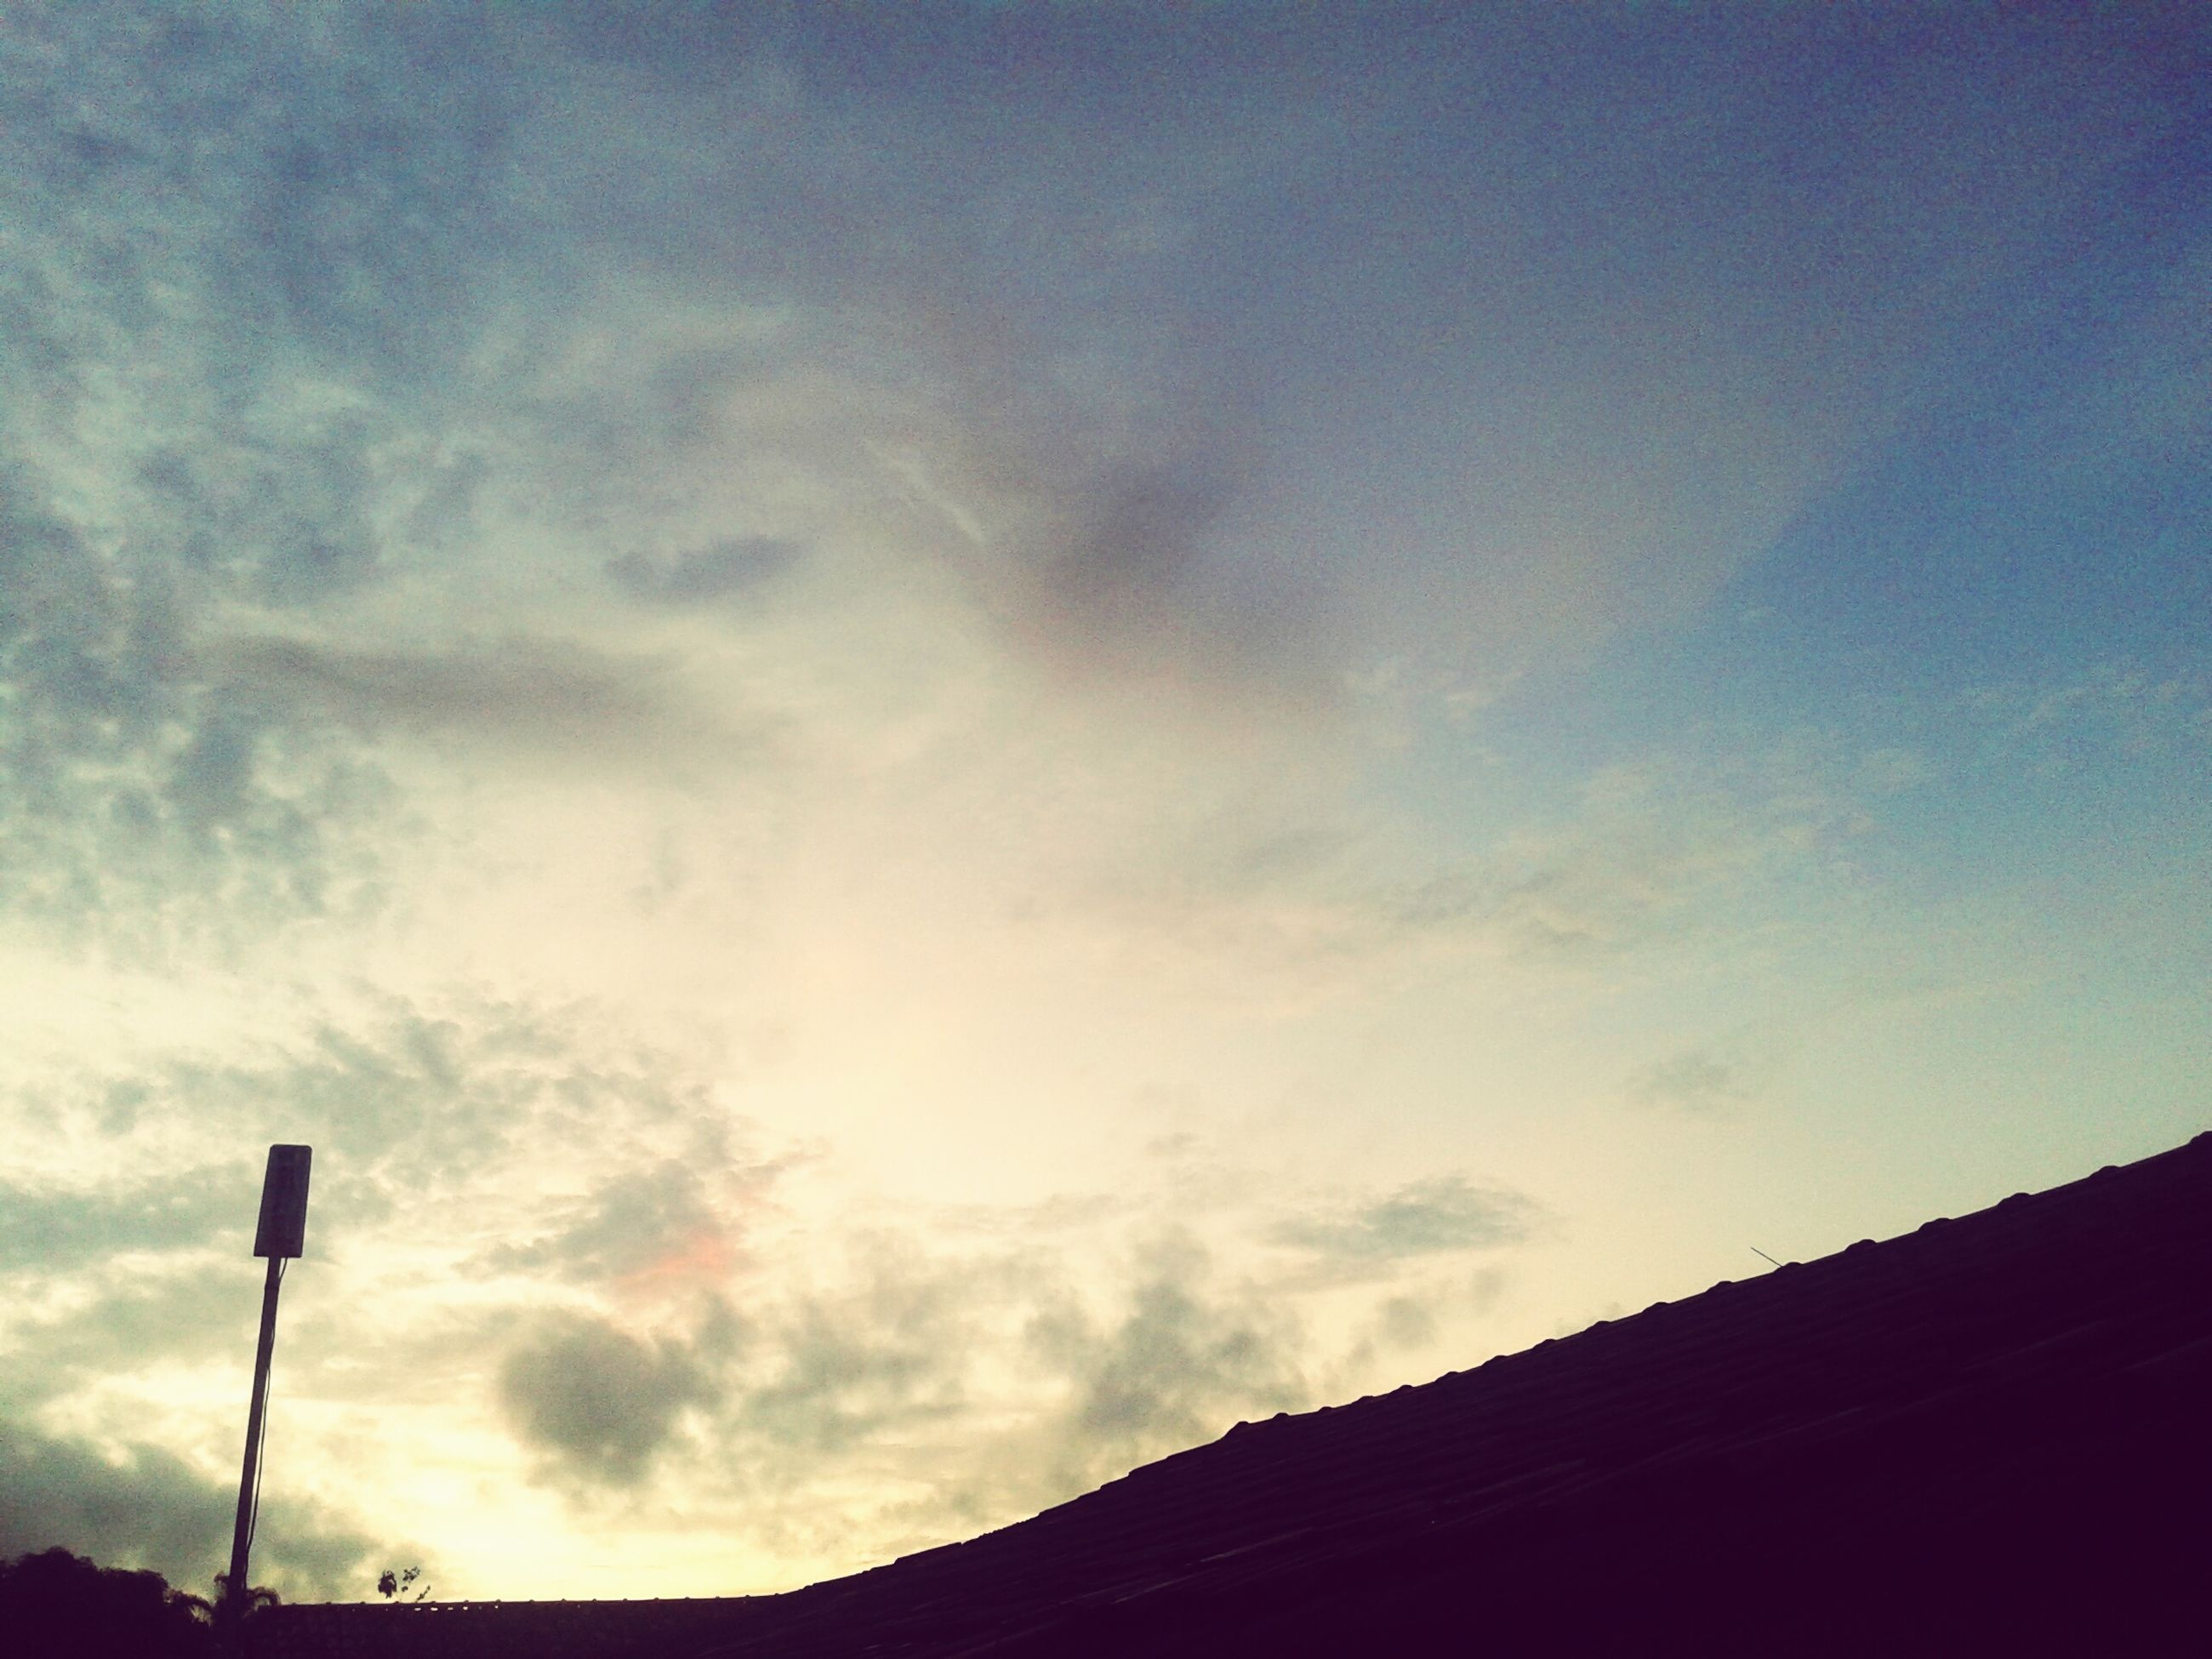 low angle view, sky, built structure, architecture, silhouette, building exterior, cloud - sky, street light, high section, cloud, cloudy, dusk, outdoors, sunset, no people, nature, lighting equipment, building, blue, house